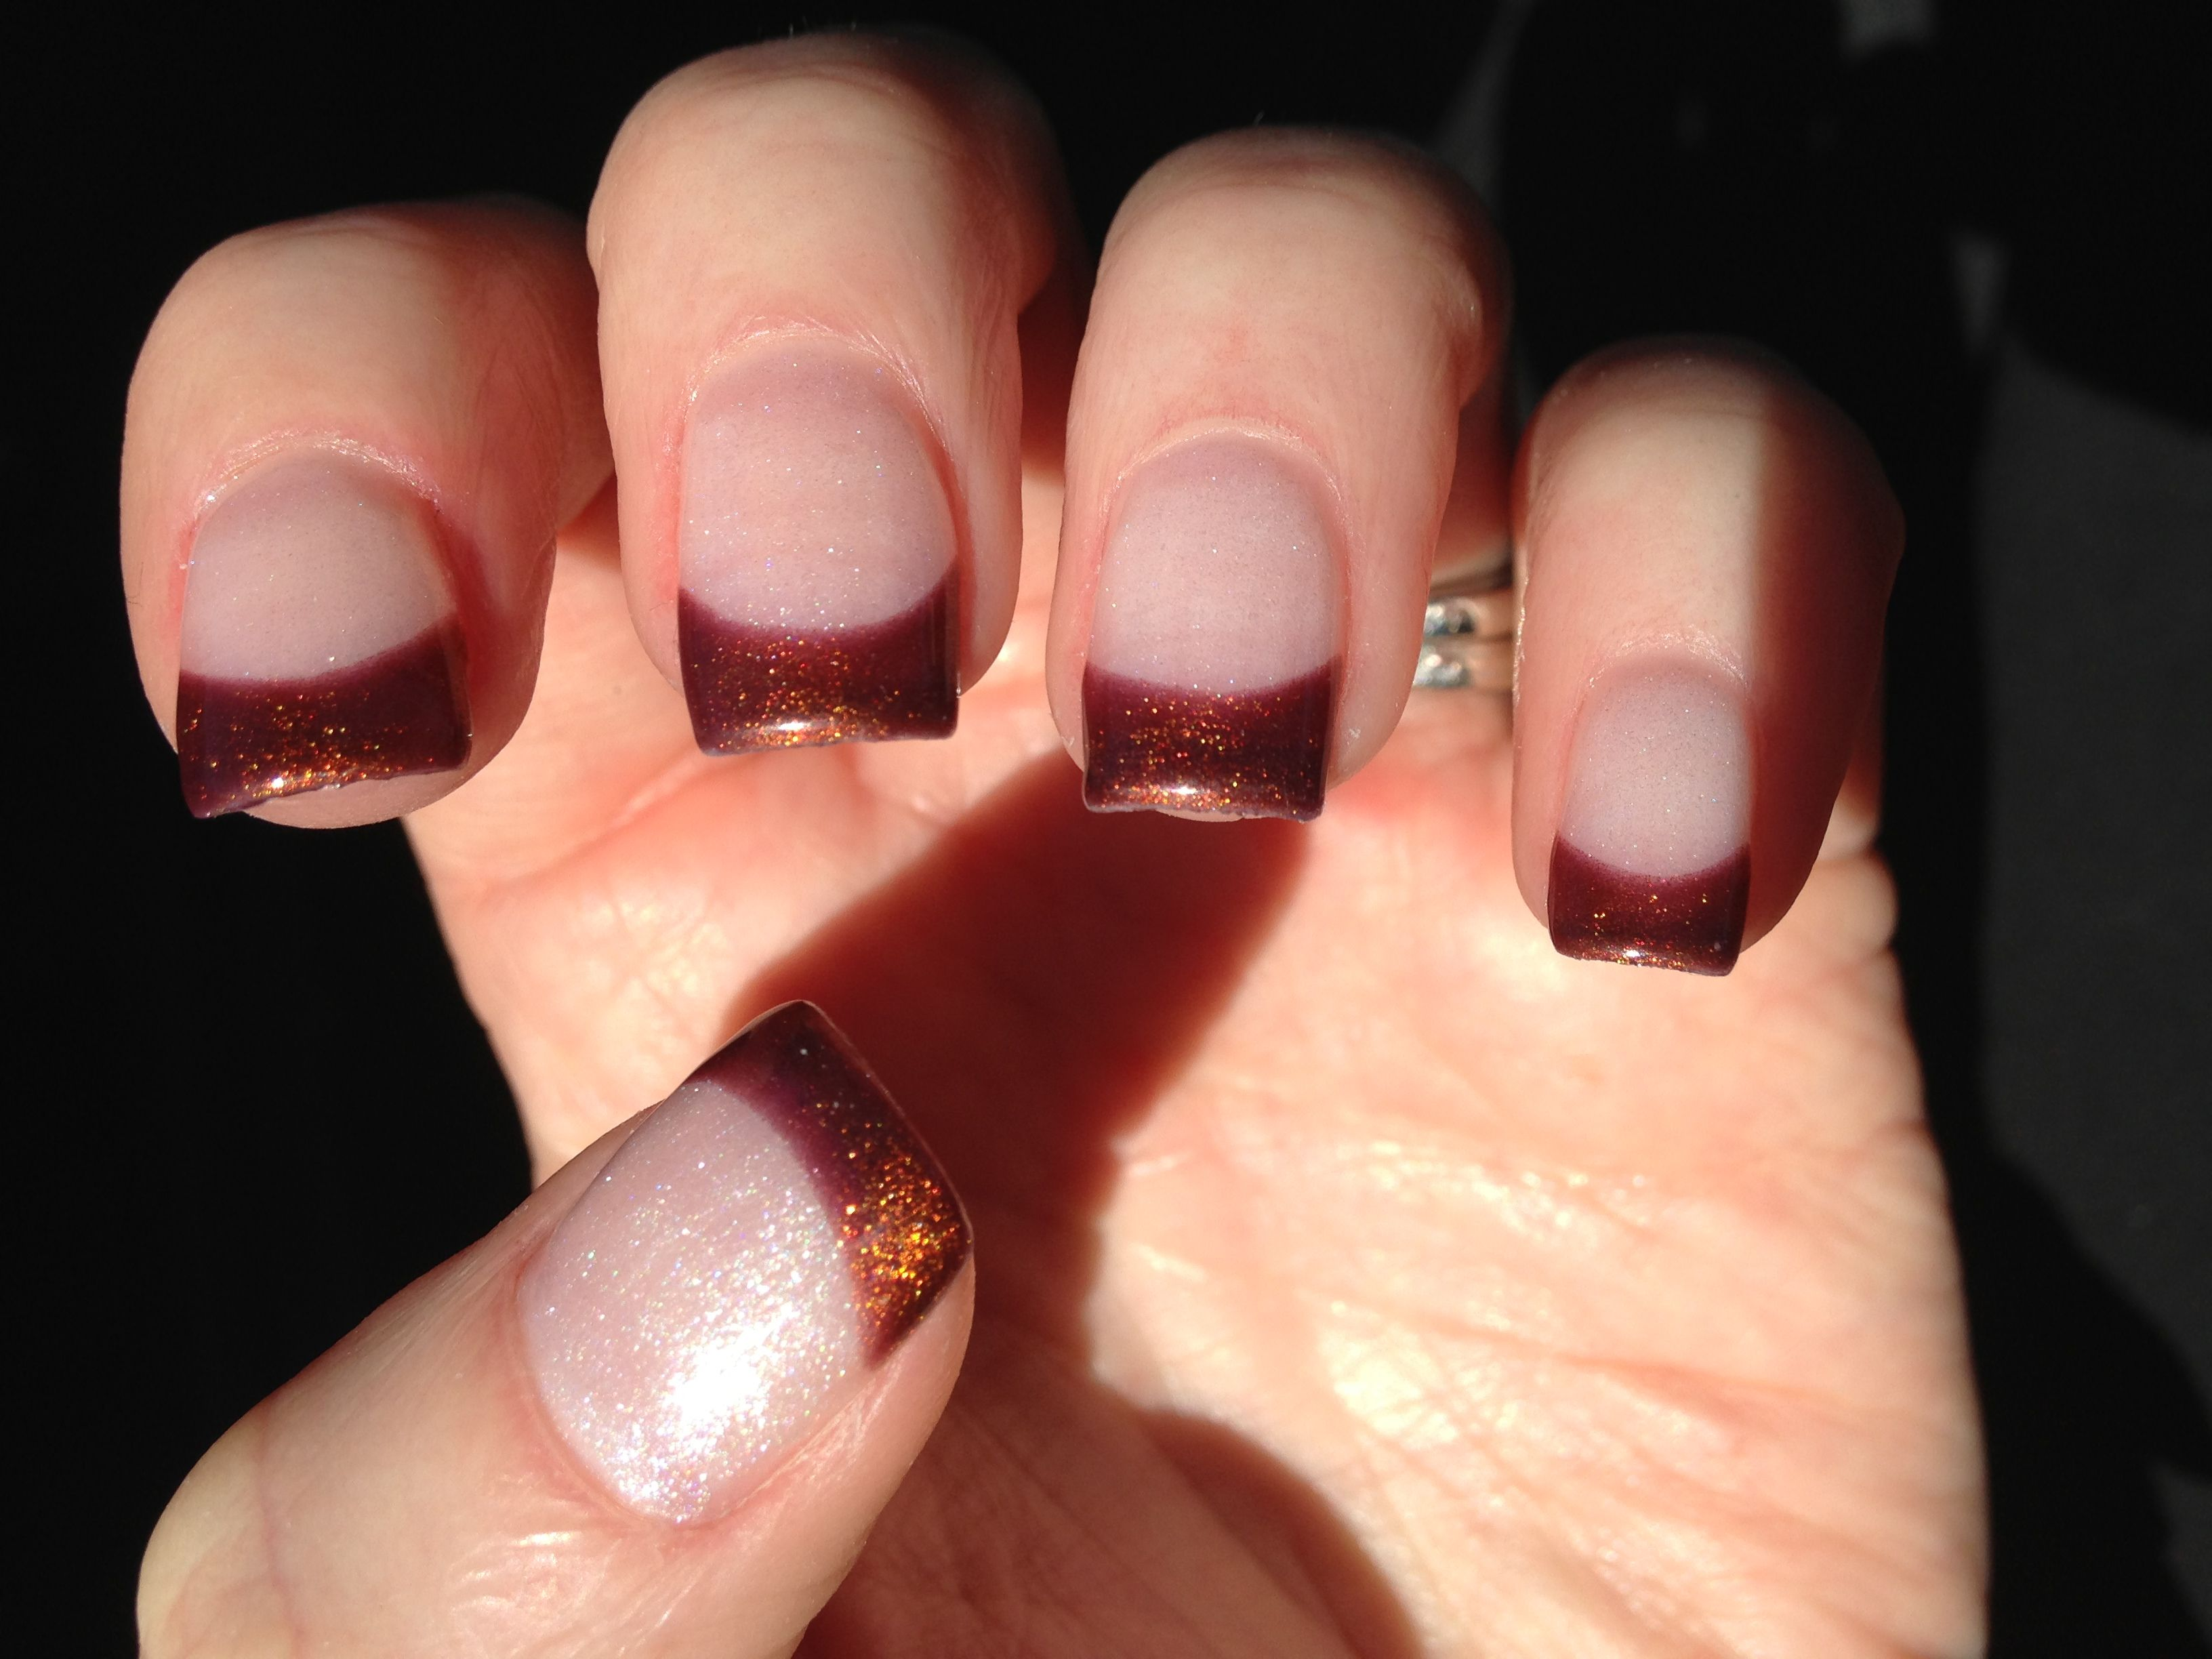 57 best Nails images on Pinterest   Nail scissors, Cute nails and ...